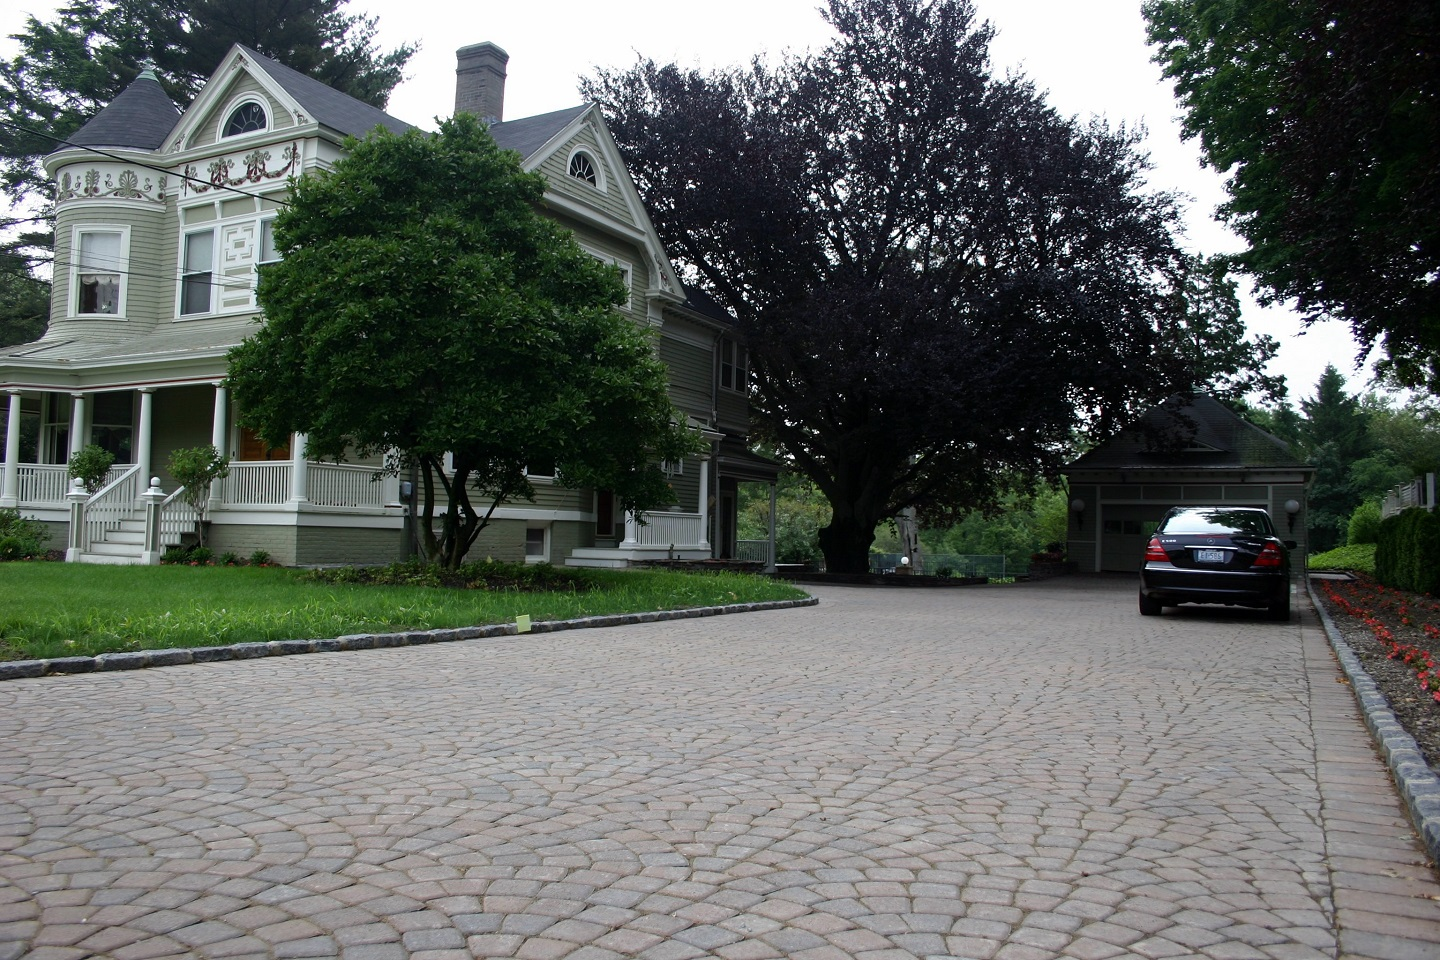 Landscape design with driveway pavers in Lexington, MA